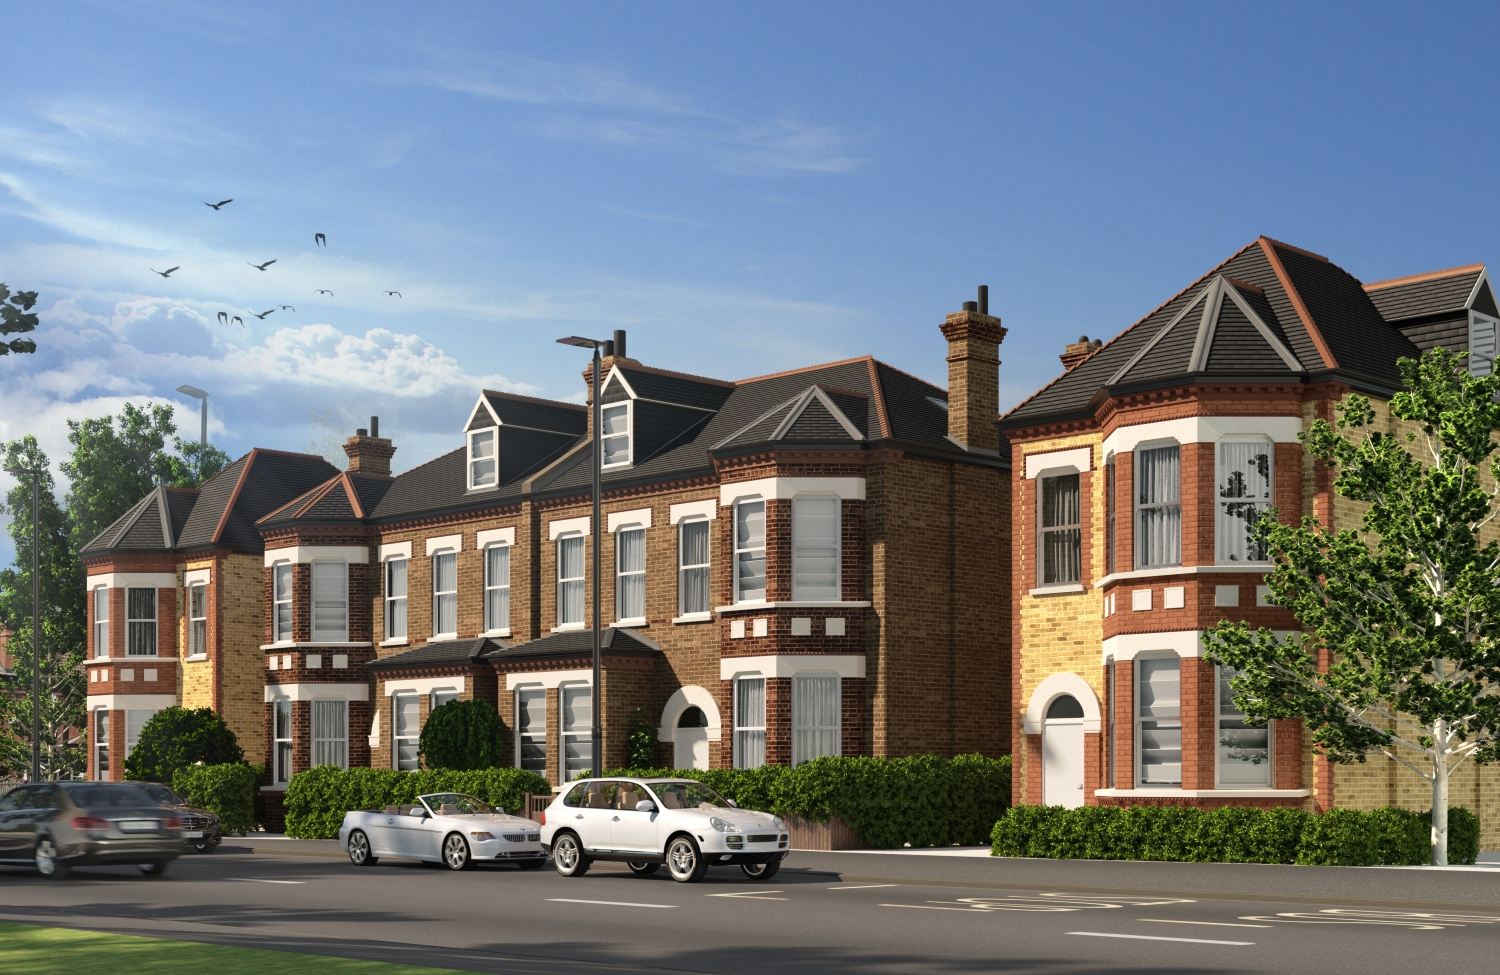 Croxted Road property exterior CGI